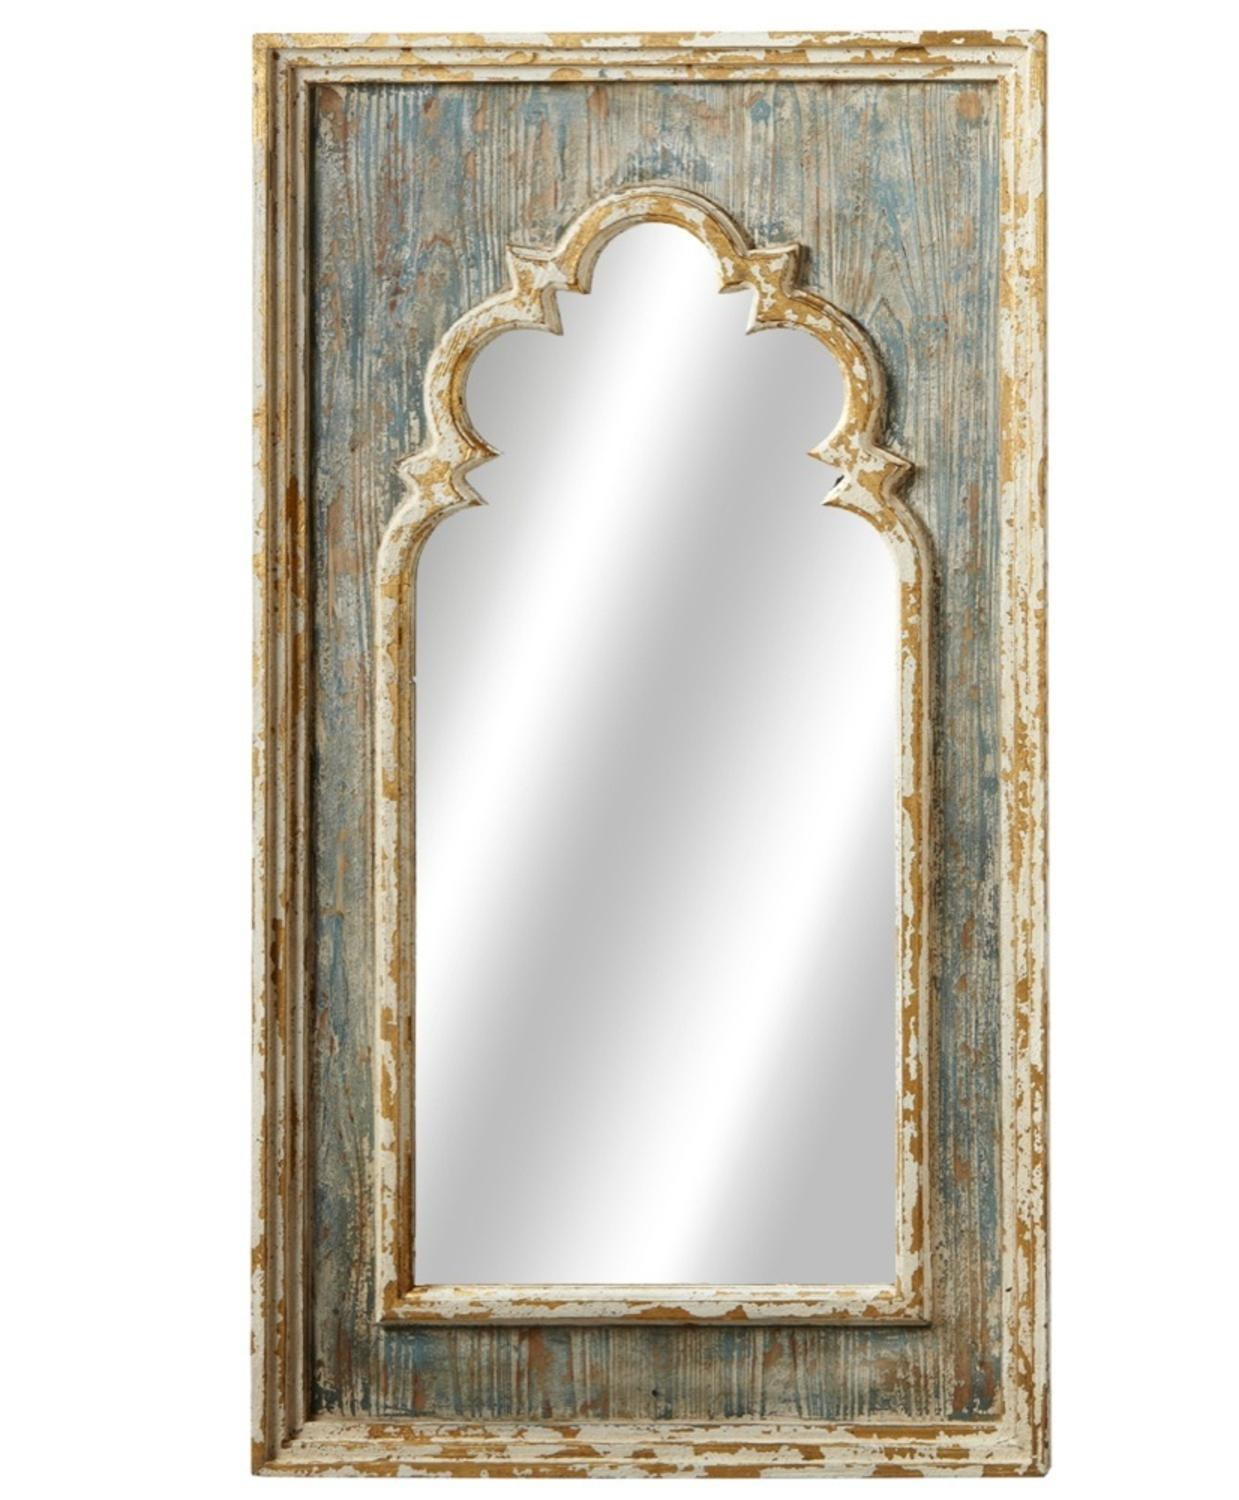 "24"" French Style Rustic Distressed Finished Blue Arch Wall Mirror With Gold Brush Pertaining To Gold Arch Wall Mirrors (View 1 of 30)"